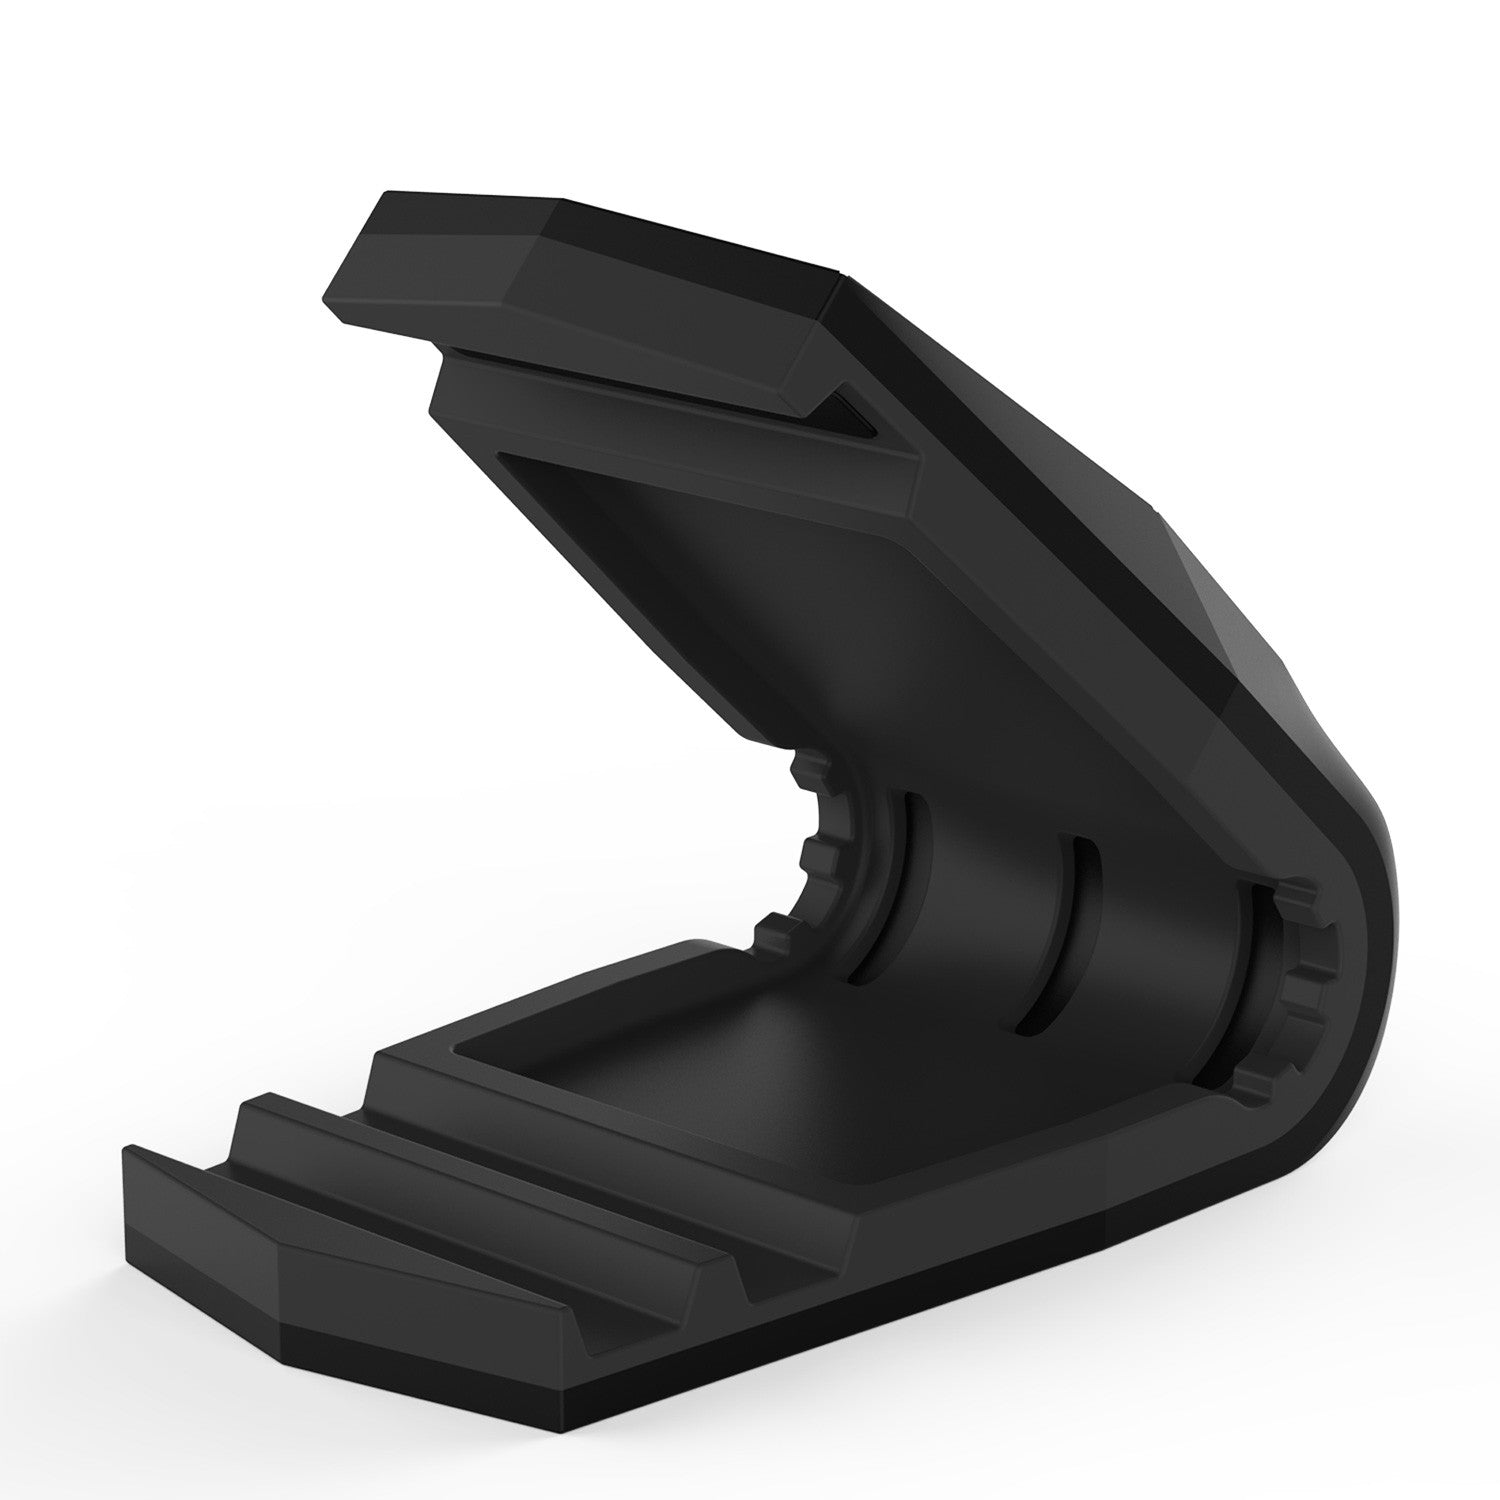 PUNKCASE Viper Car Phone Holder Black, Universal Dashboard Mount for all Smartphones, Low Profile & Sleek Design, One Hand Operation